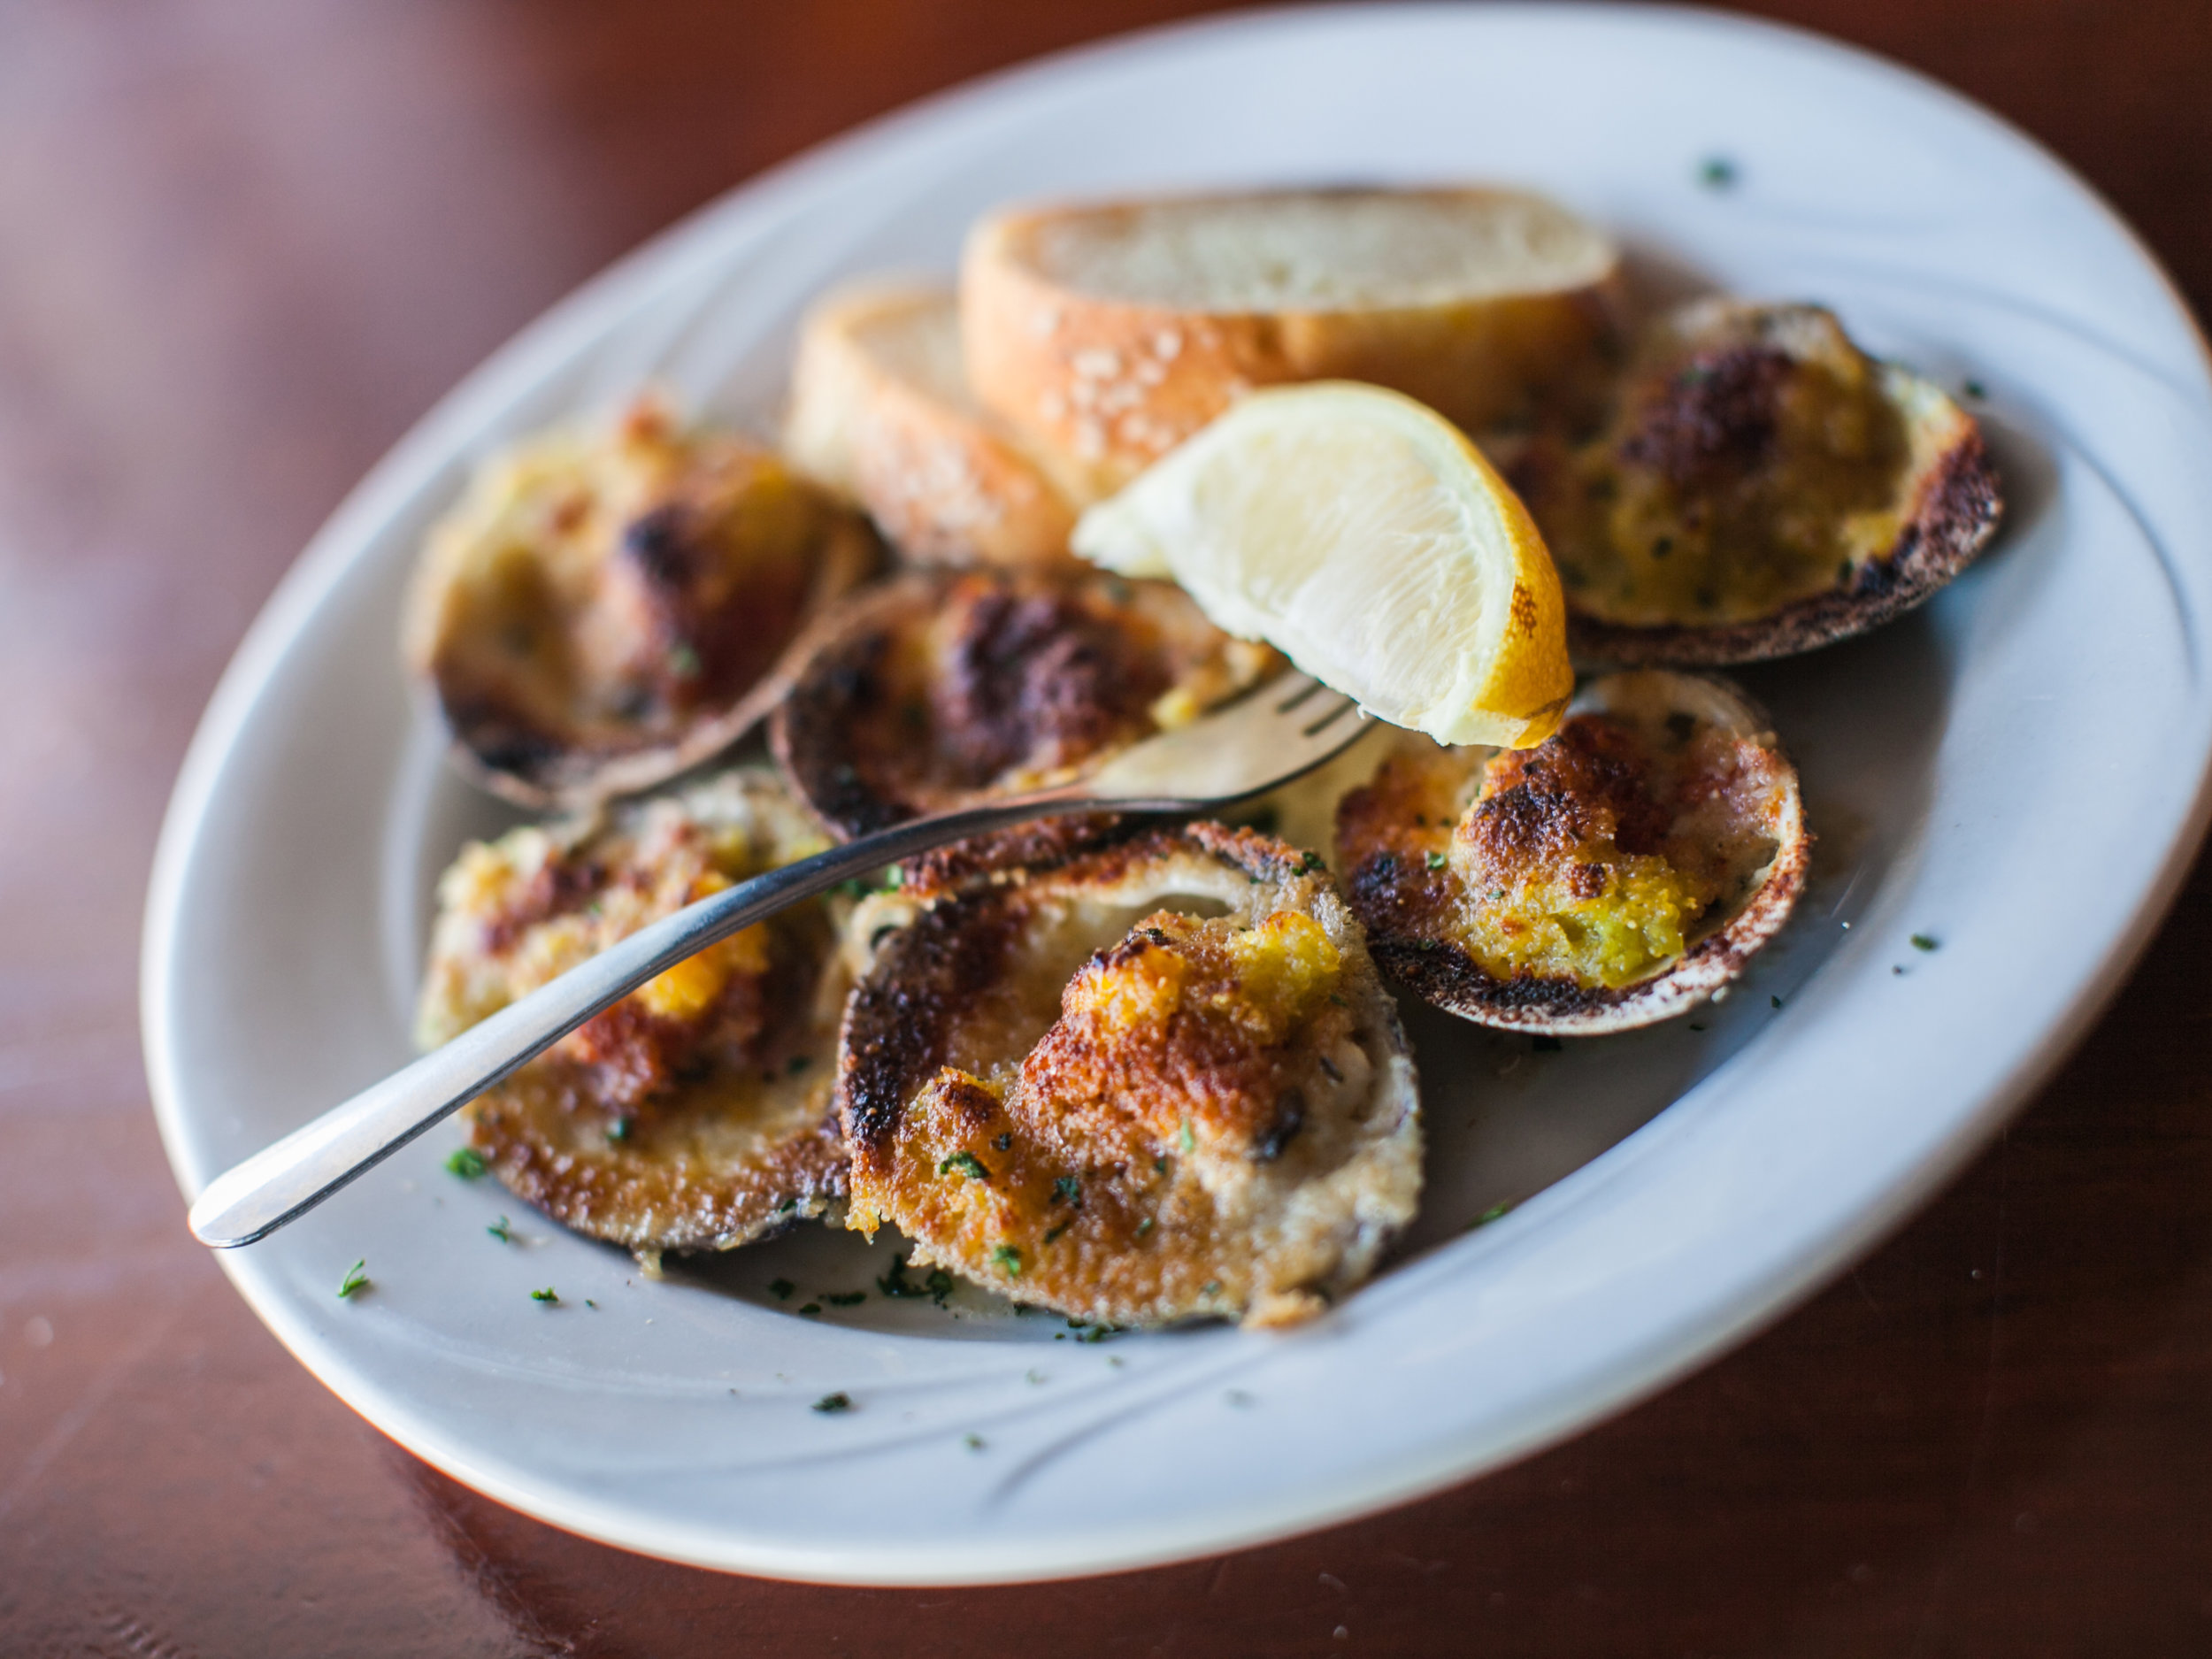 Baked Garlic Clams are an all-time favorite at the Whale. Photo: Ann Coen.